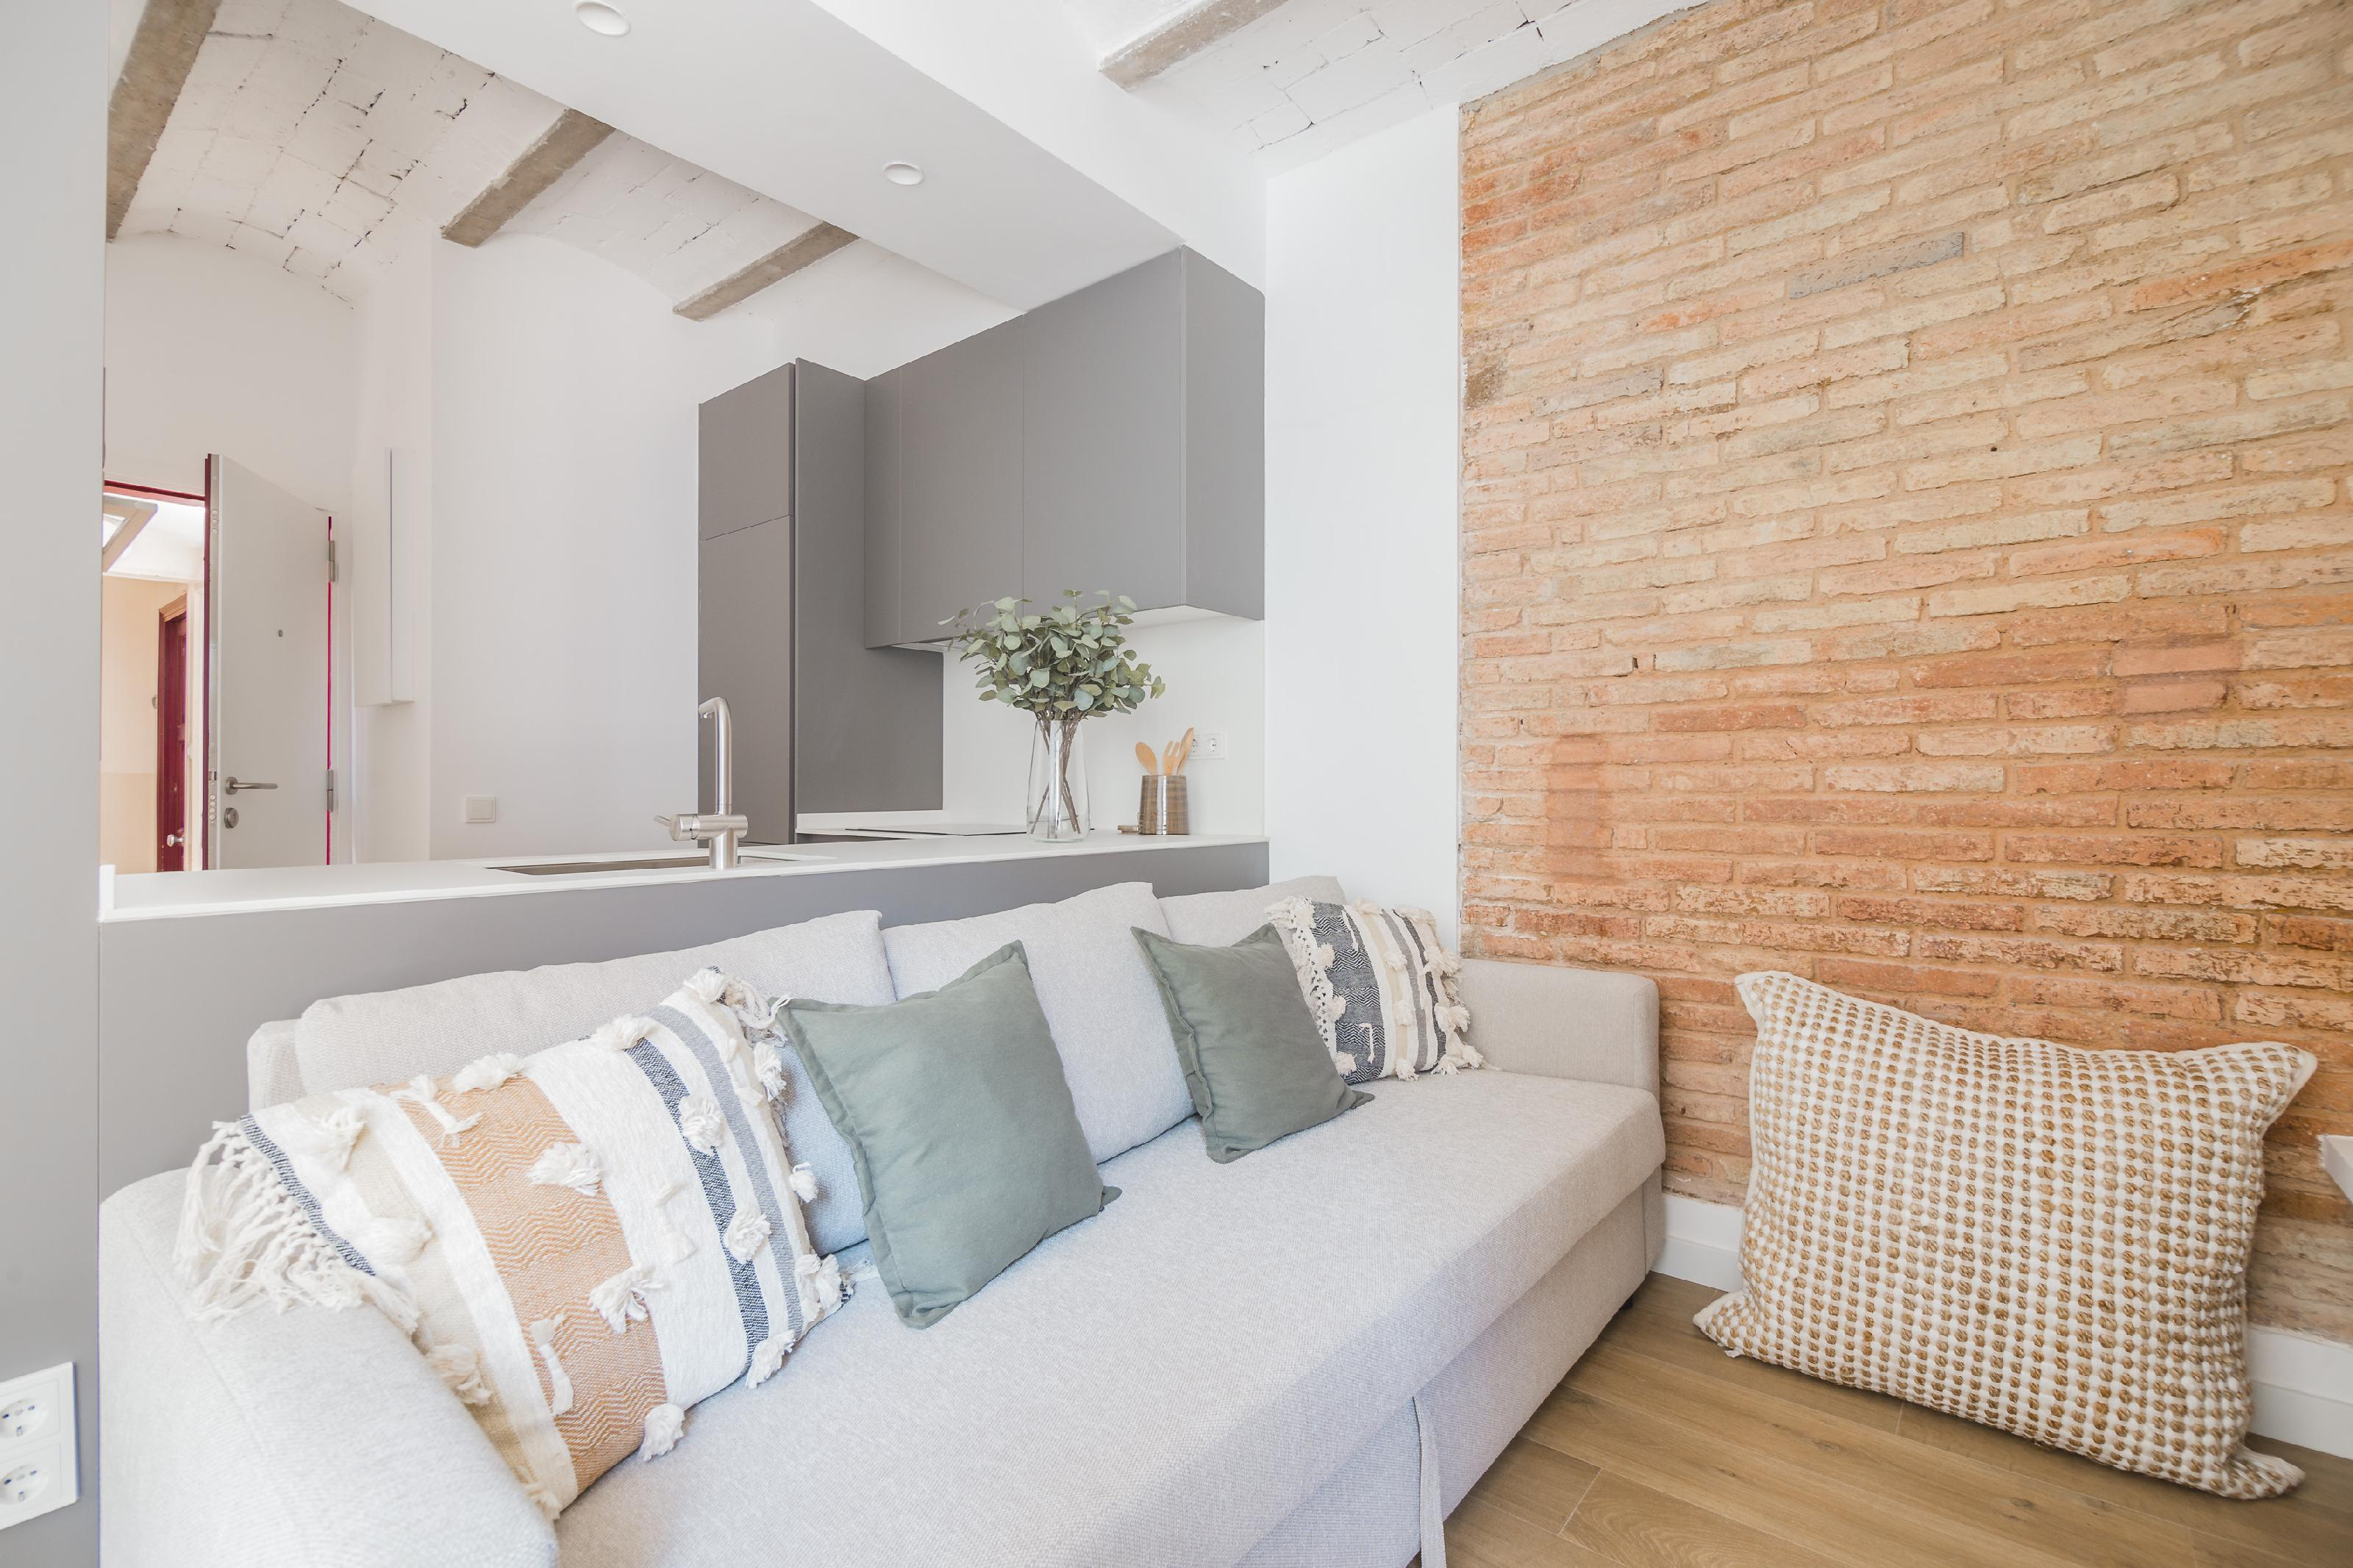 240301 Flat for sale in Gràcia, Camp Grassot and Gràcia Nova 9